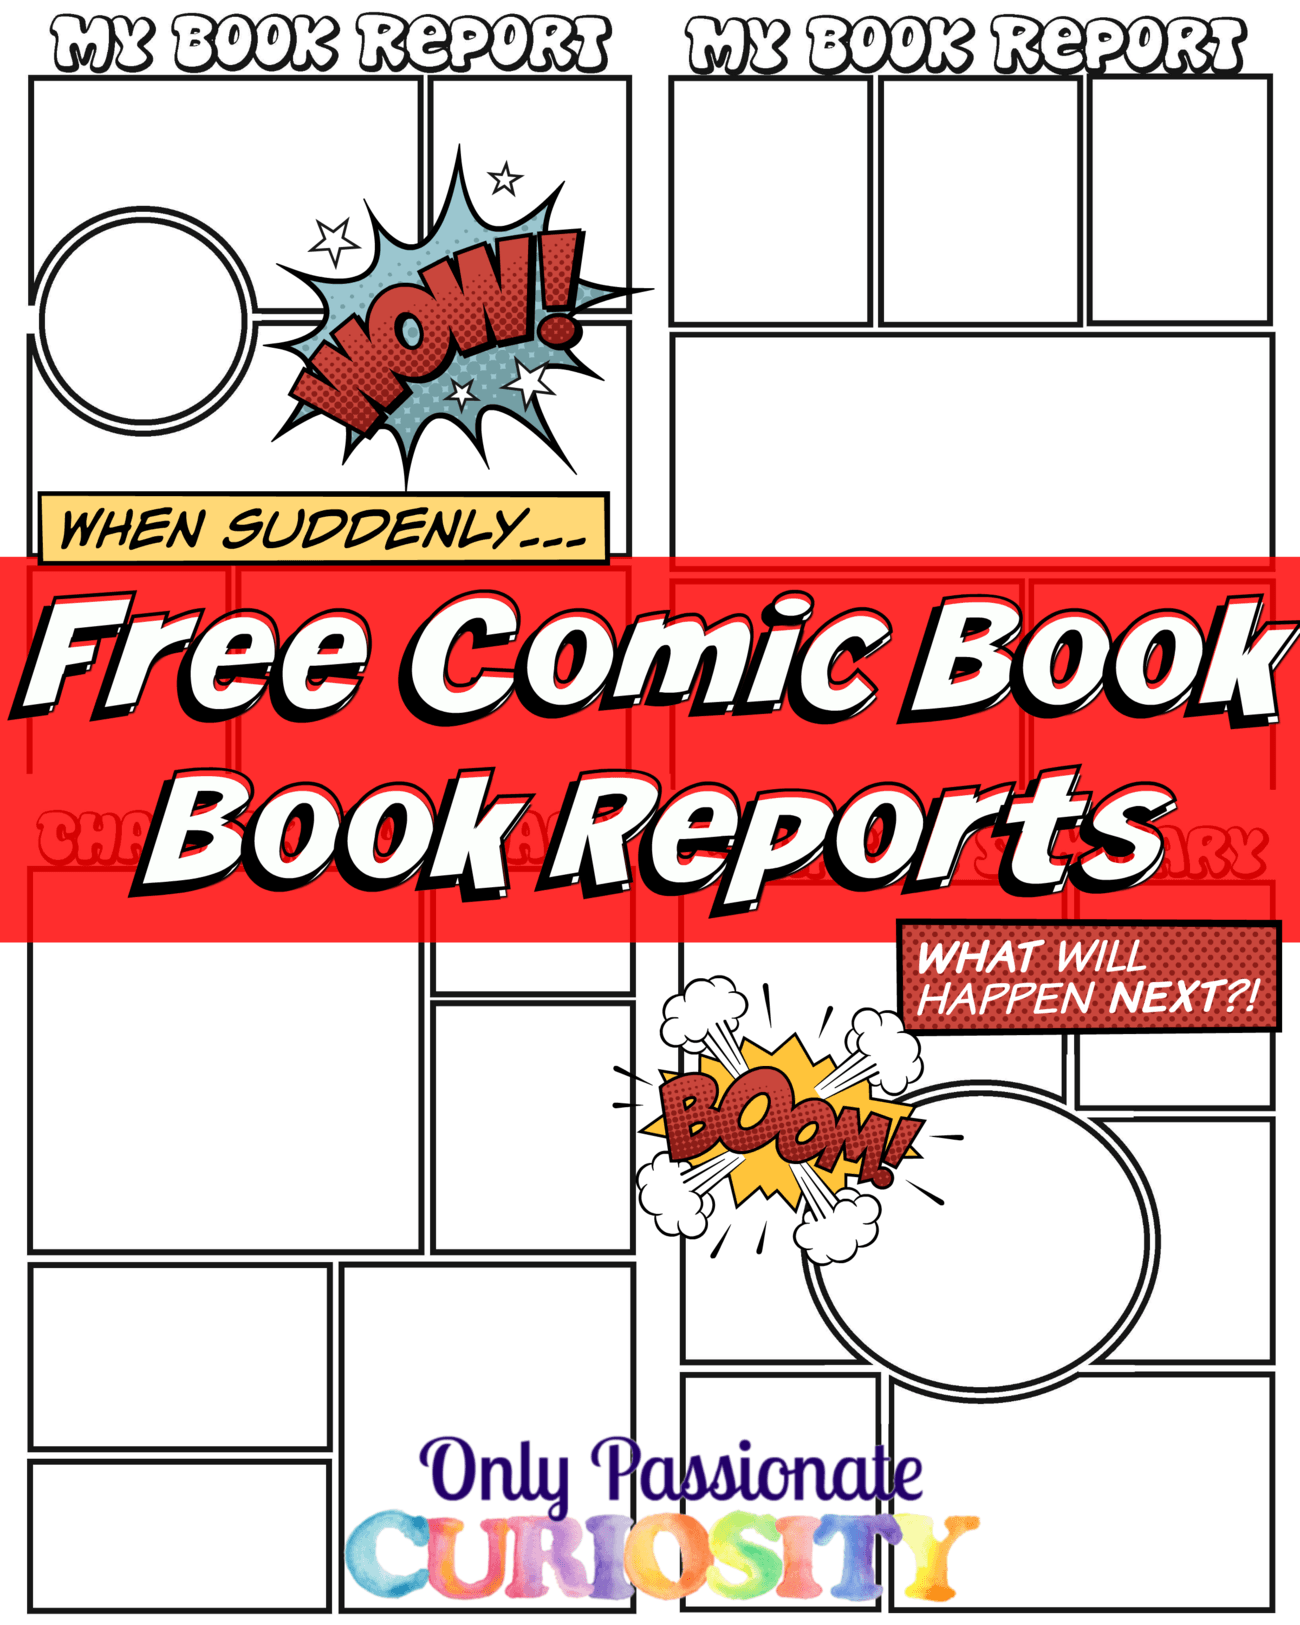 Comic Strip Book Reports